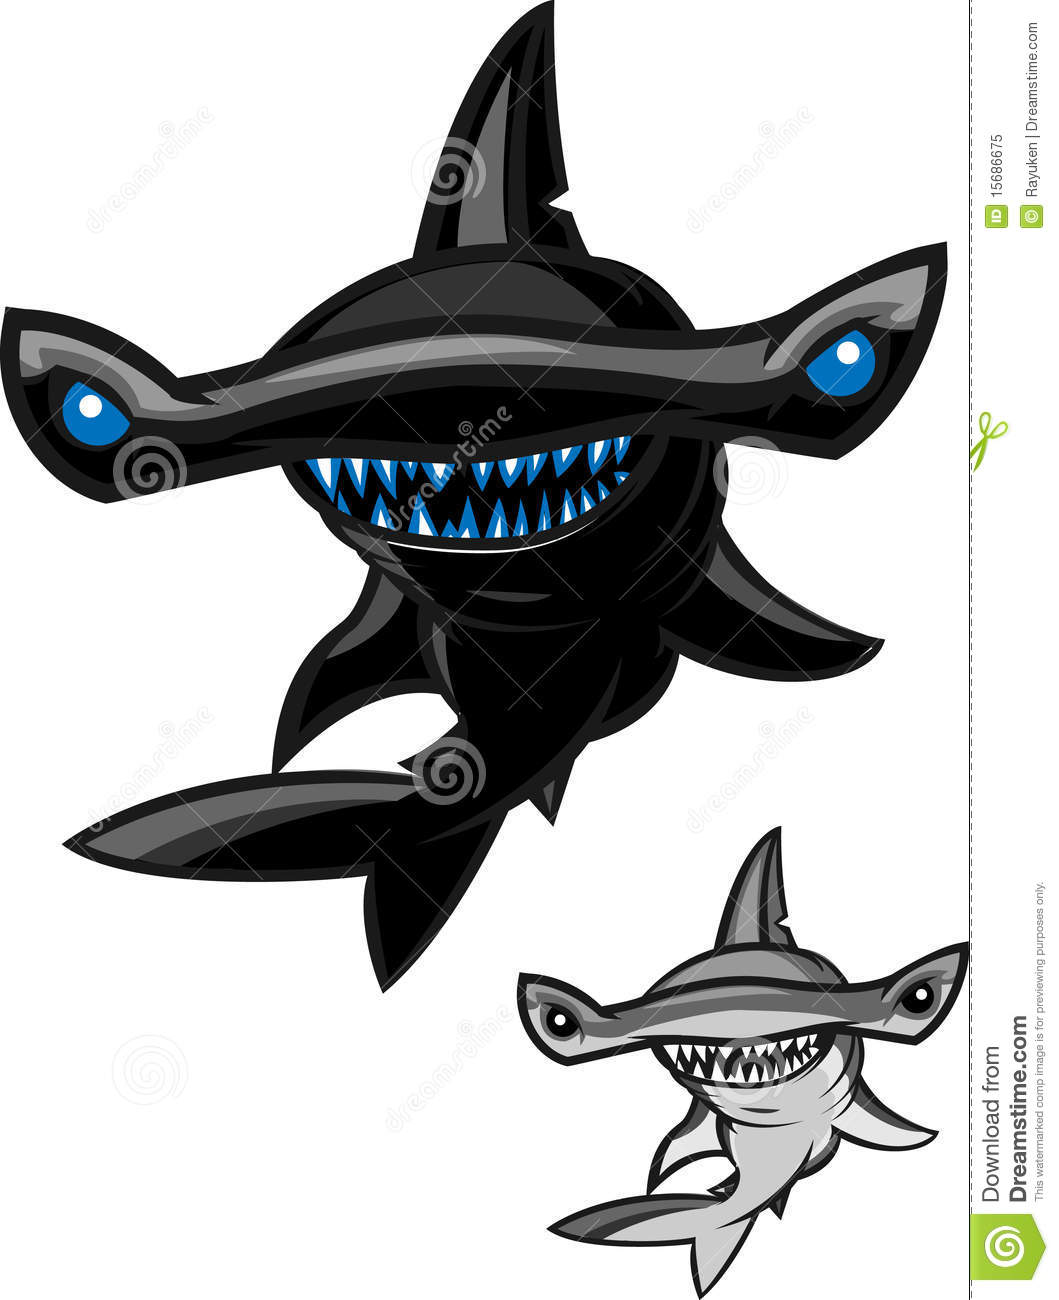 Hammerhead Shark Royalty Free Stock Photo - Image: 15686675